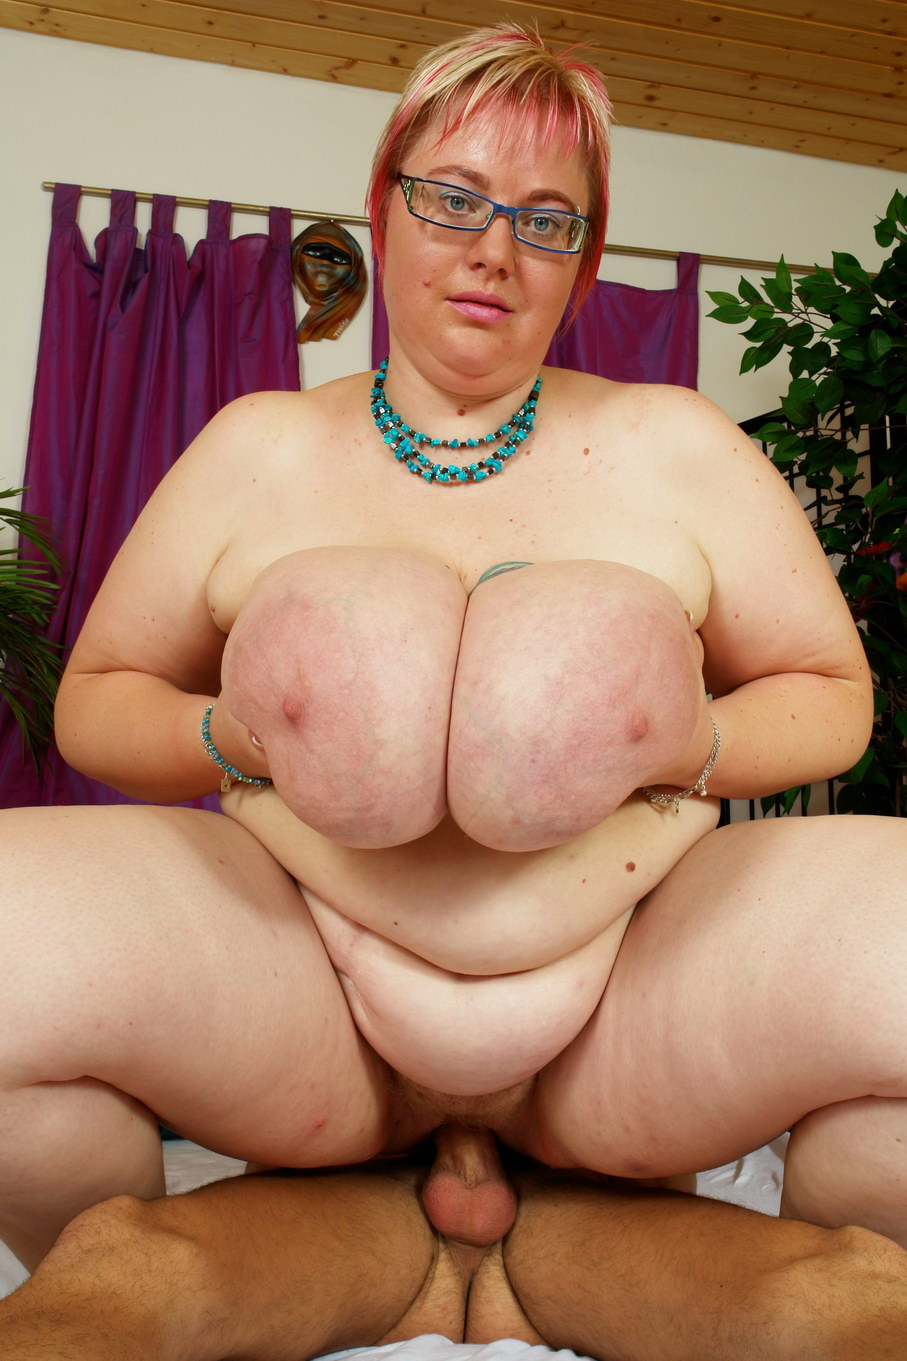 Seems brilliant Chubby short haired nude especial